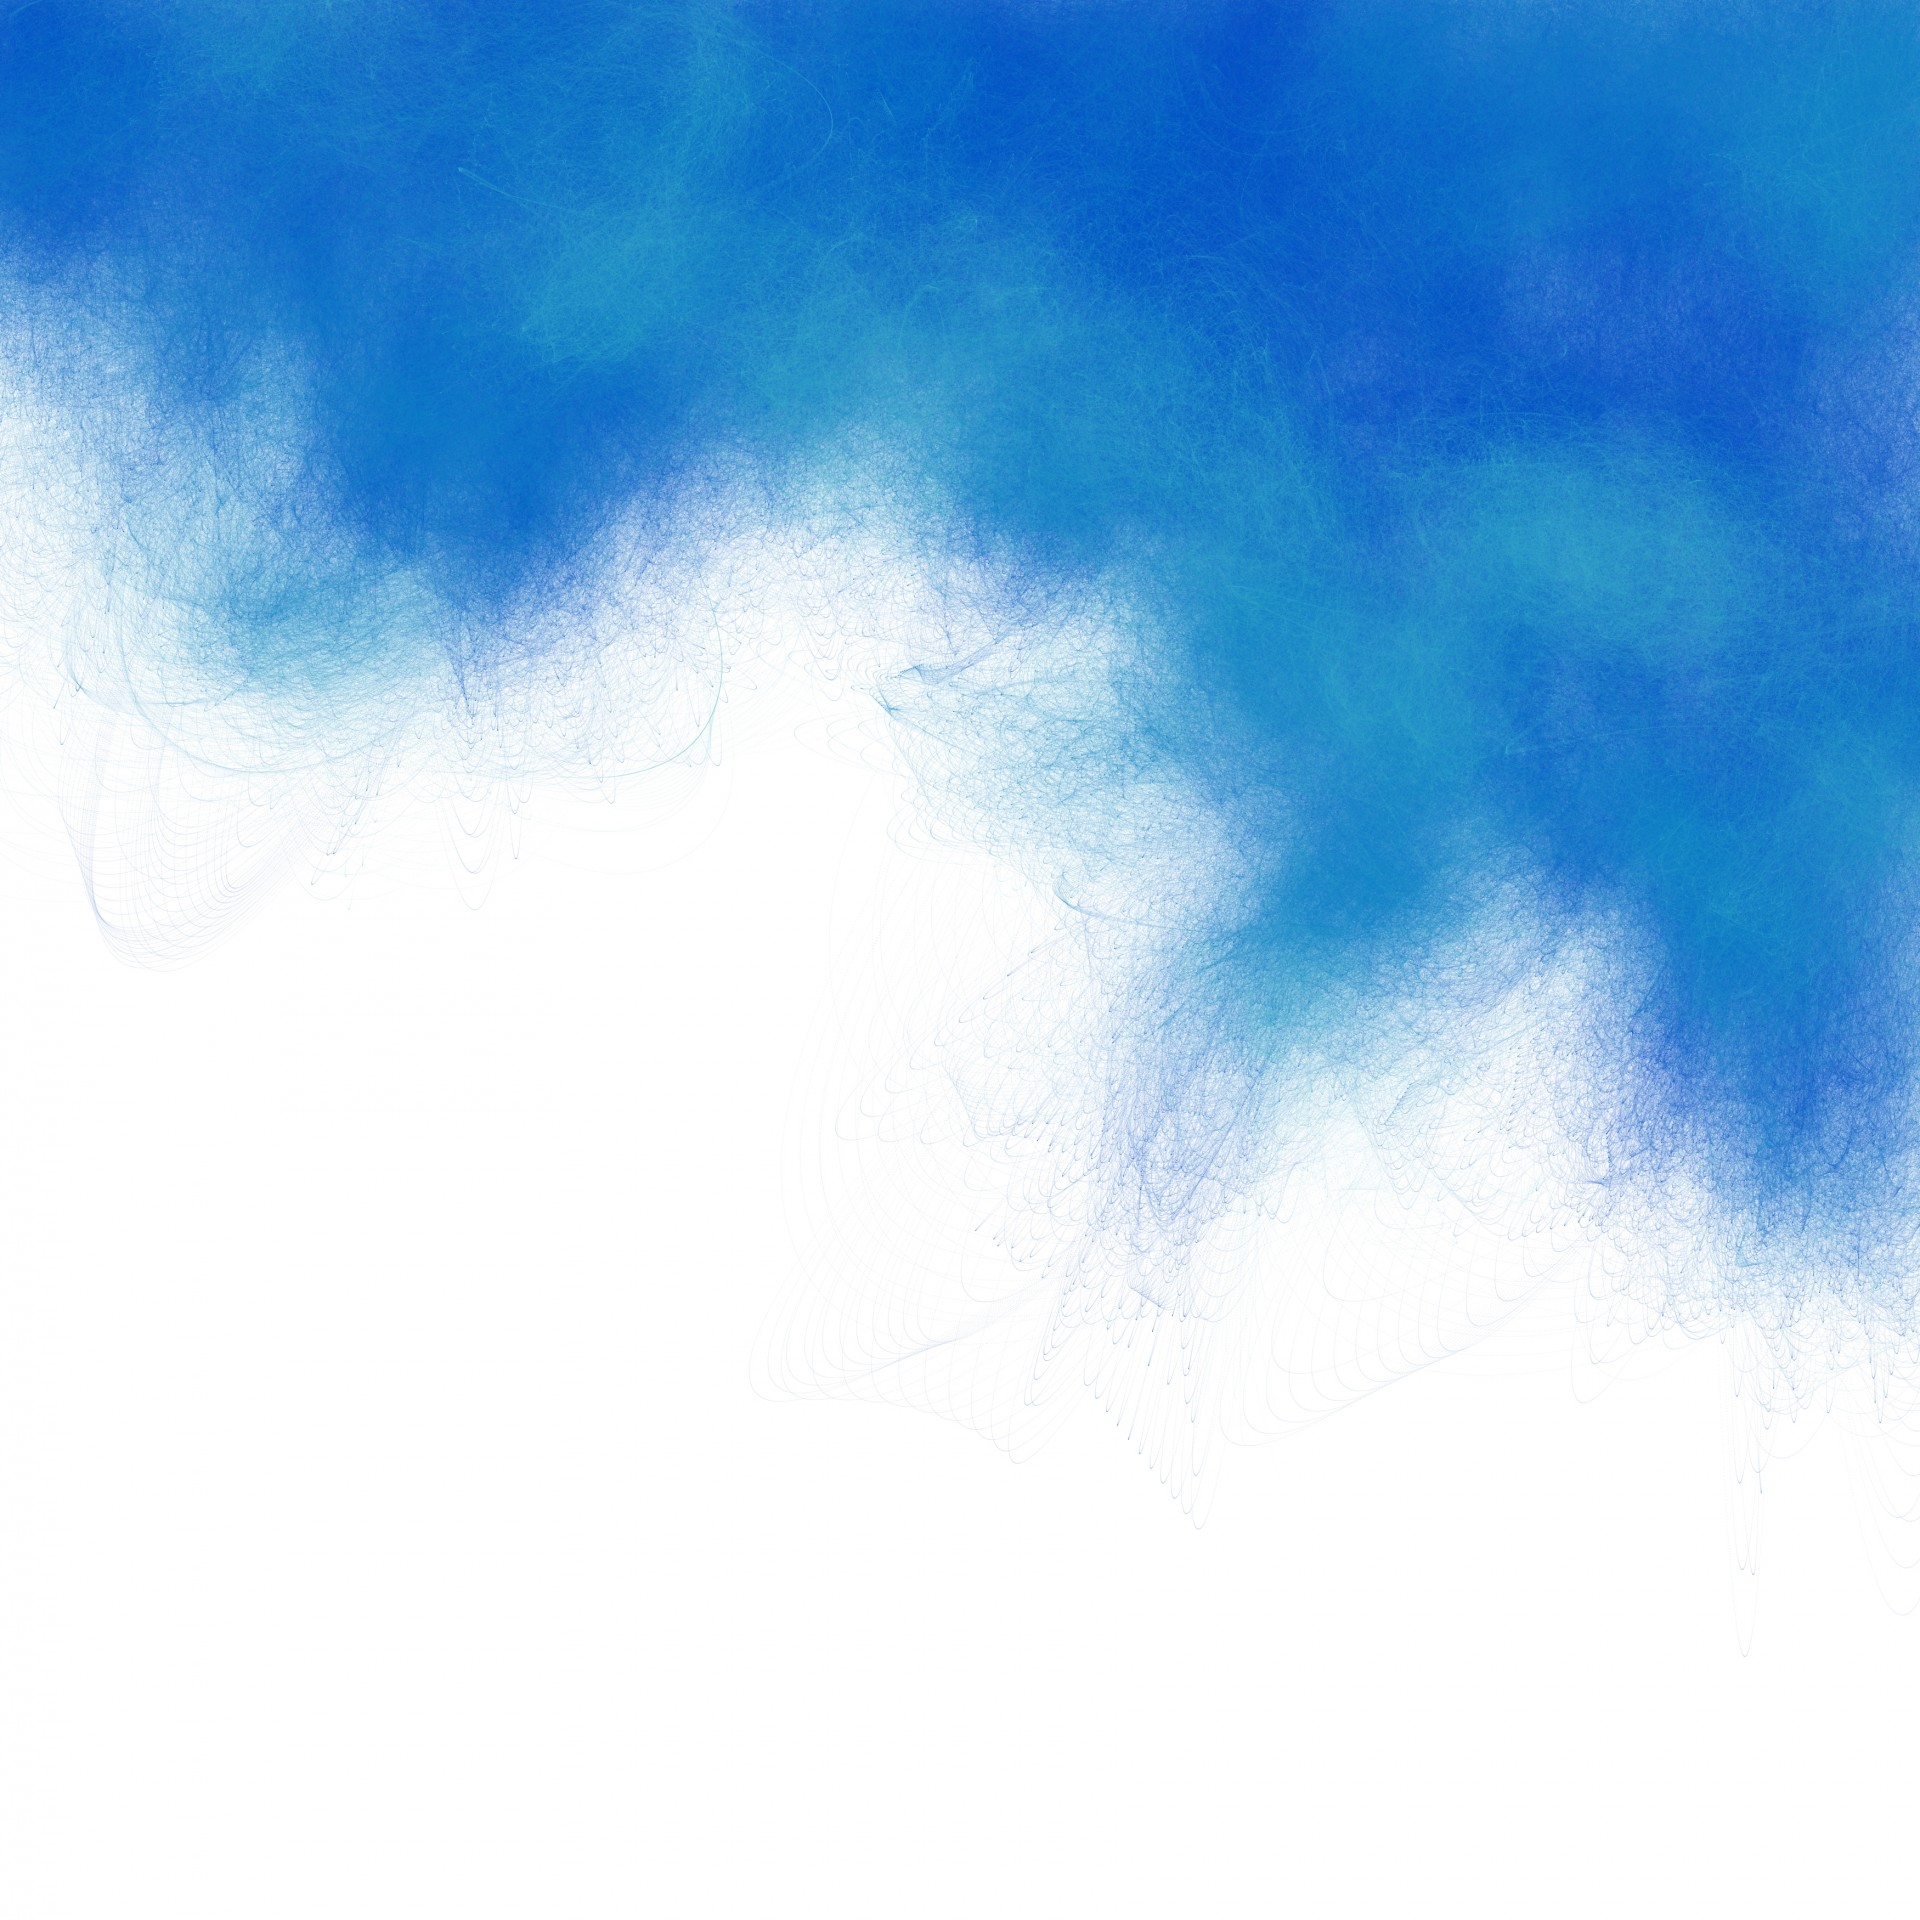 Blue Smoke Background Free Stock Photo - Public Domain Pictures